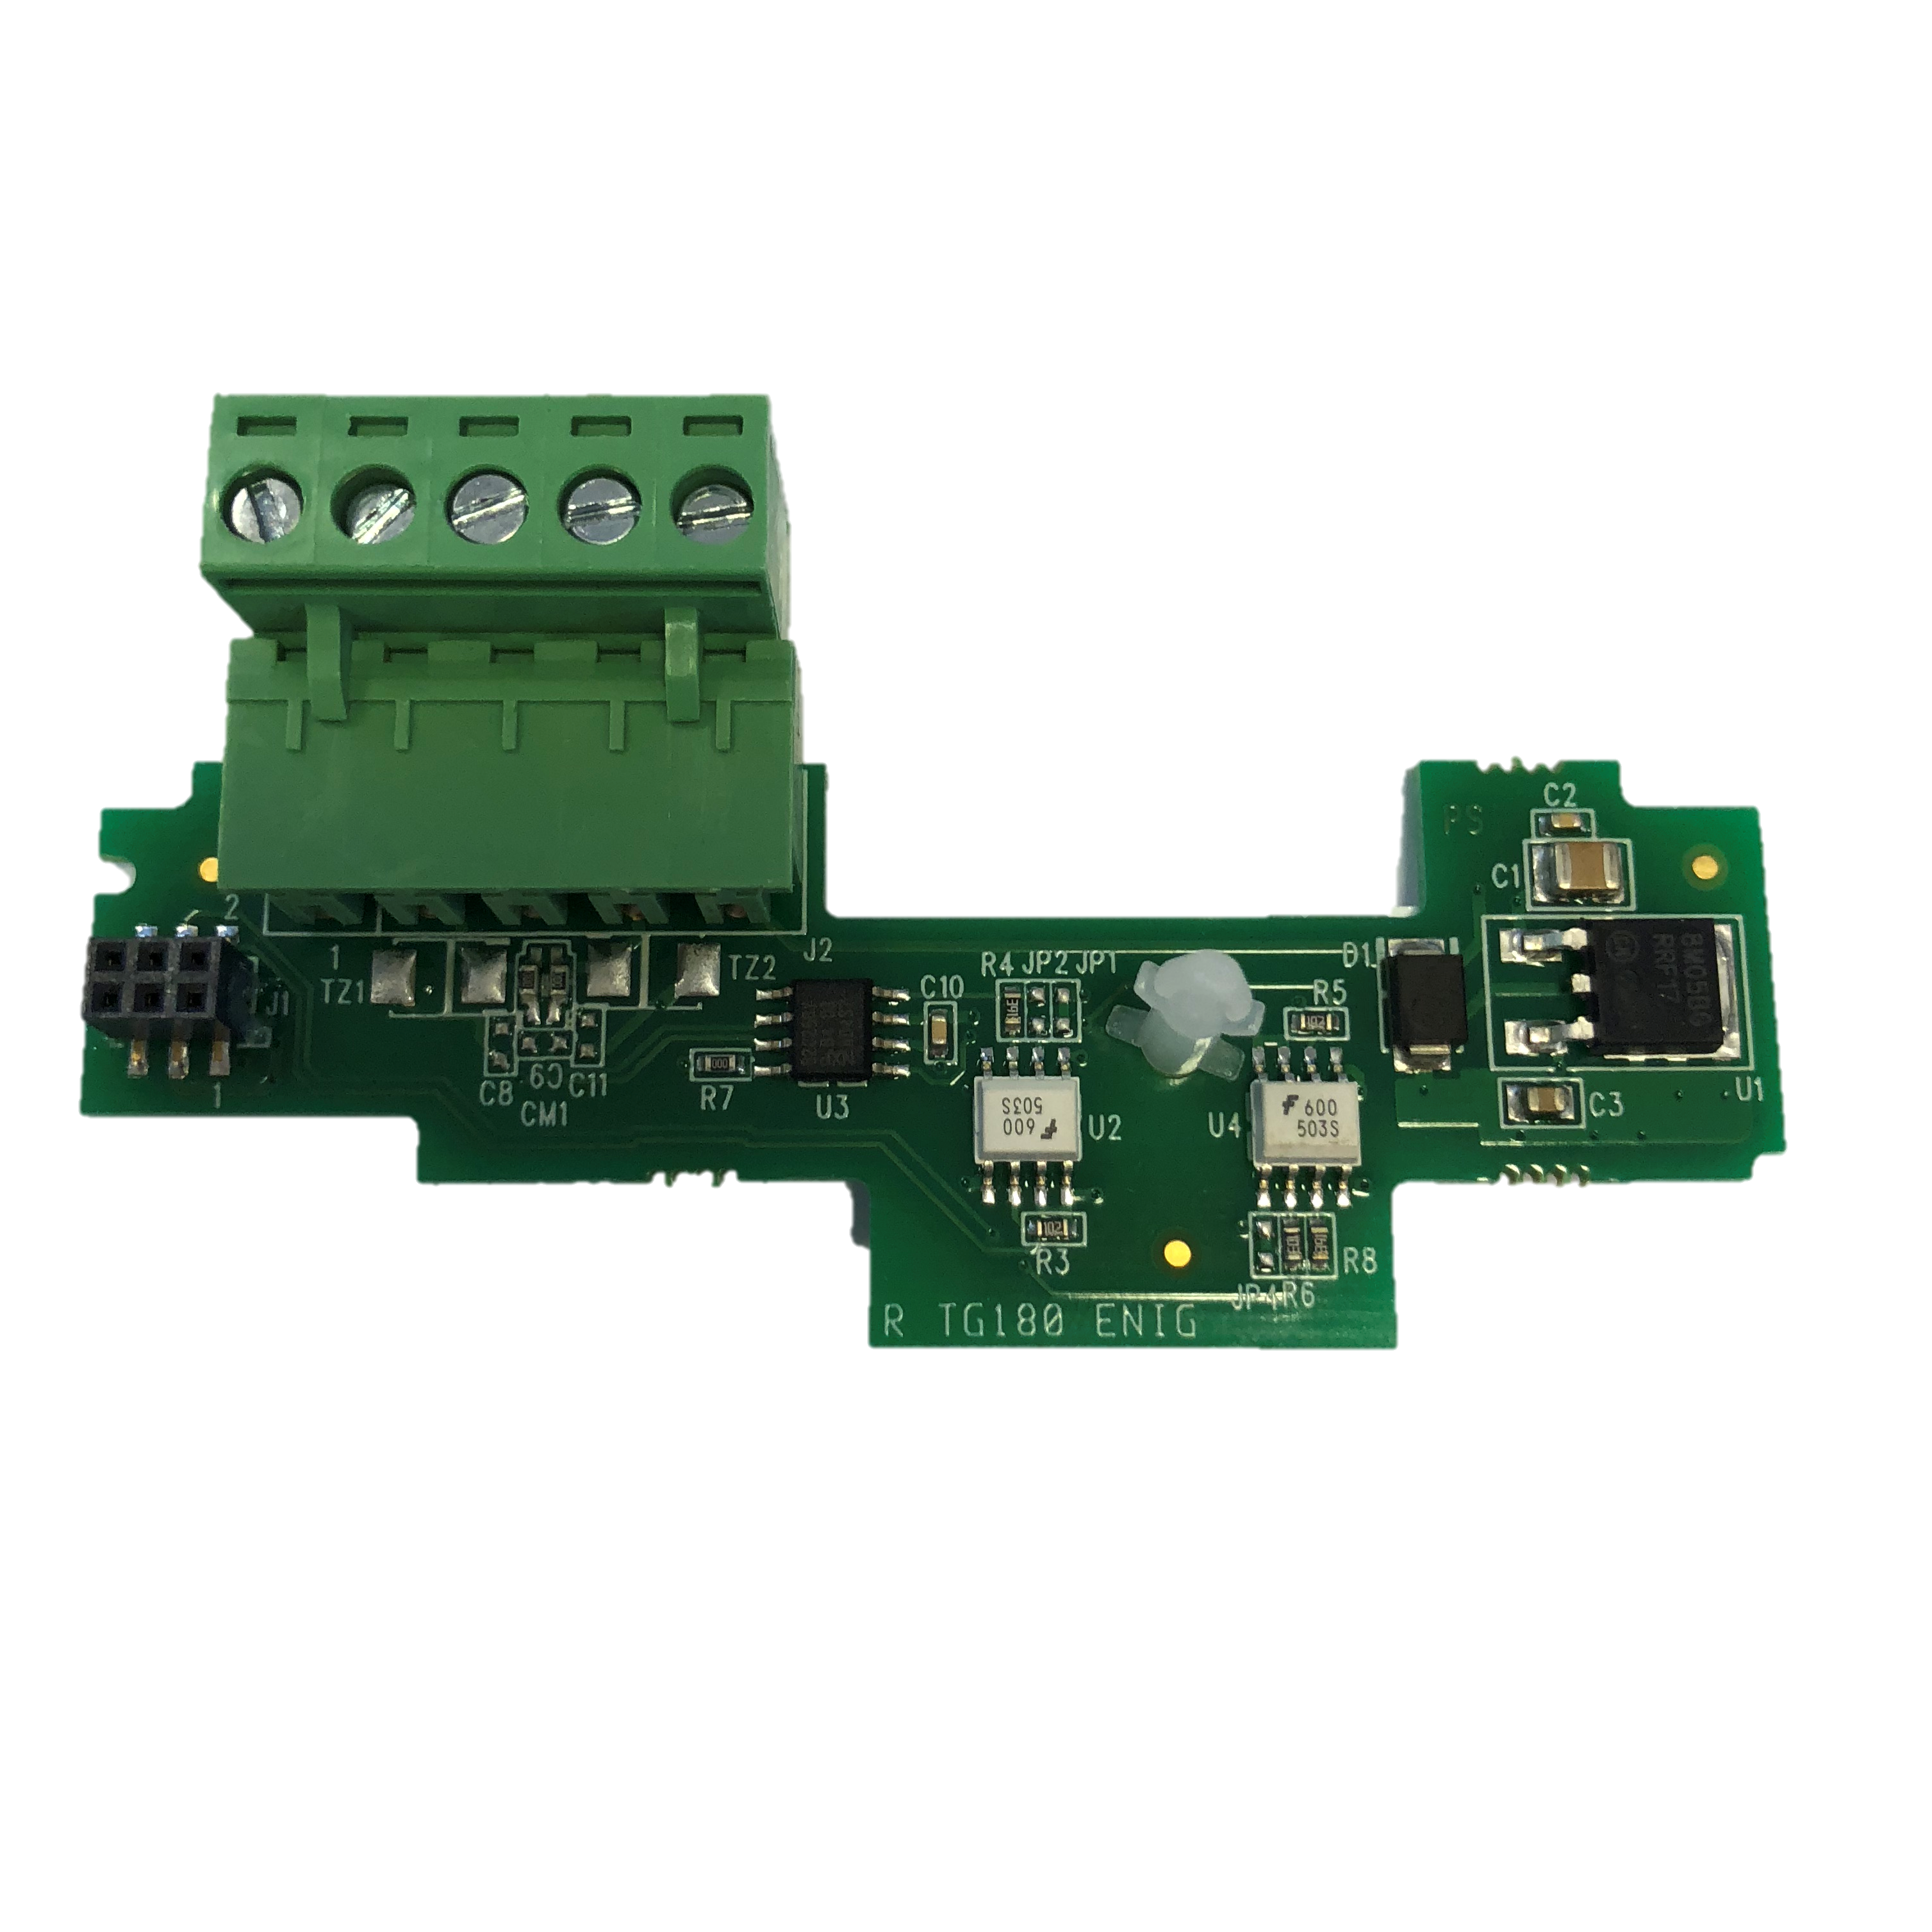 UN-V100-17-CAN UNITRONICS CAN BUS ISOLATED COMMS PORT